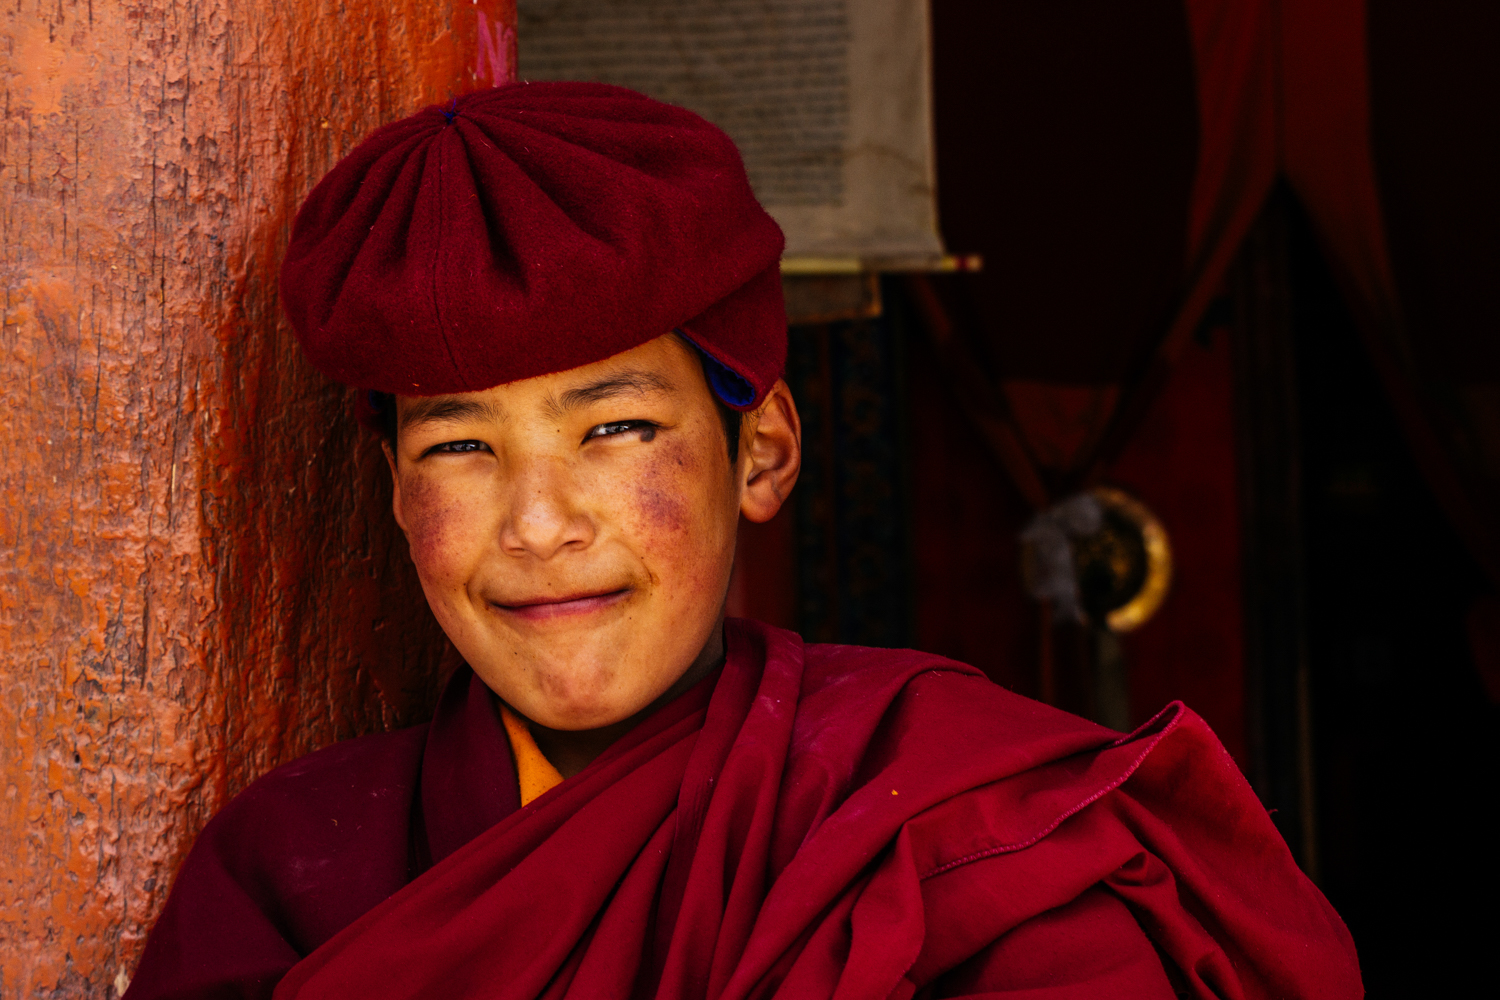 Novice Monk, Hemis Monastery